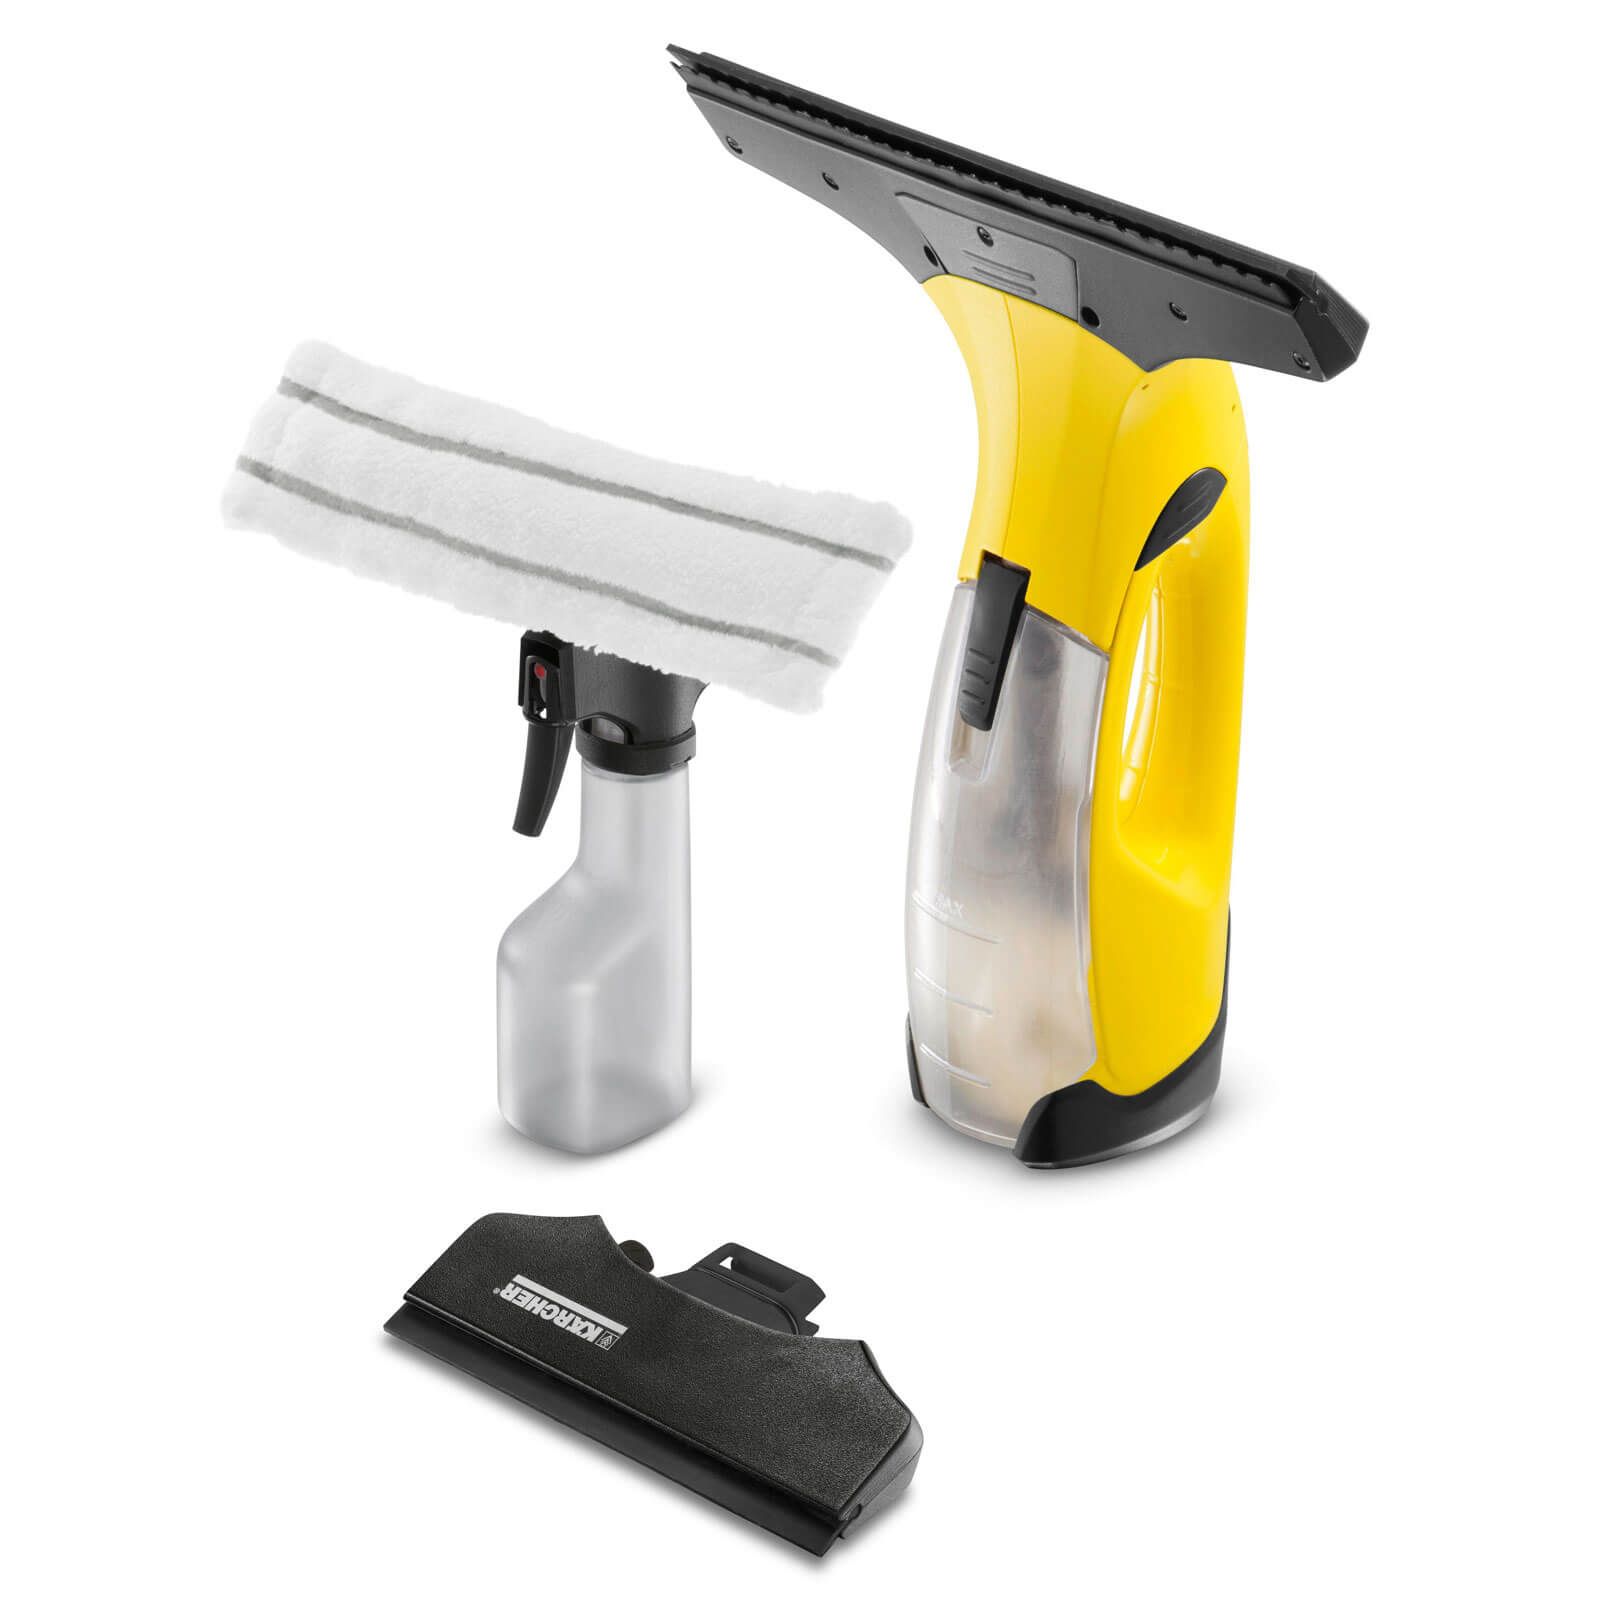 Karcher WV 2 PREMIUM Rechargeable Window Vac with Spray Bottle, Pad & Small Nozzle